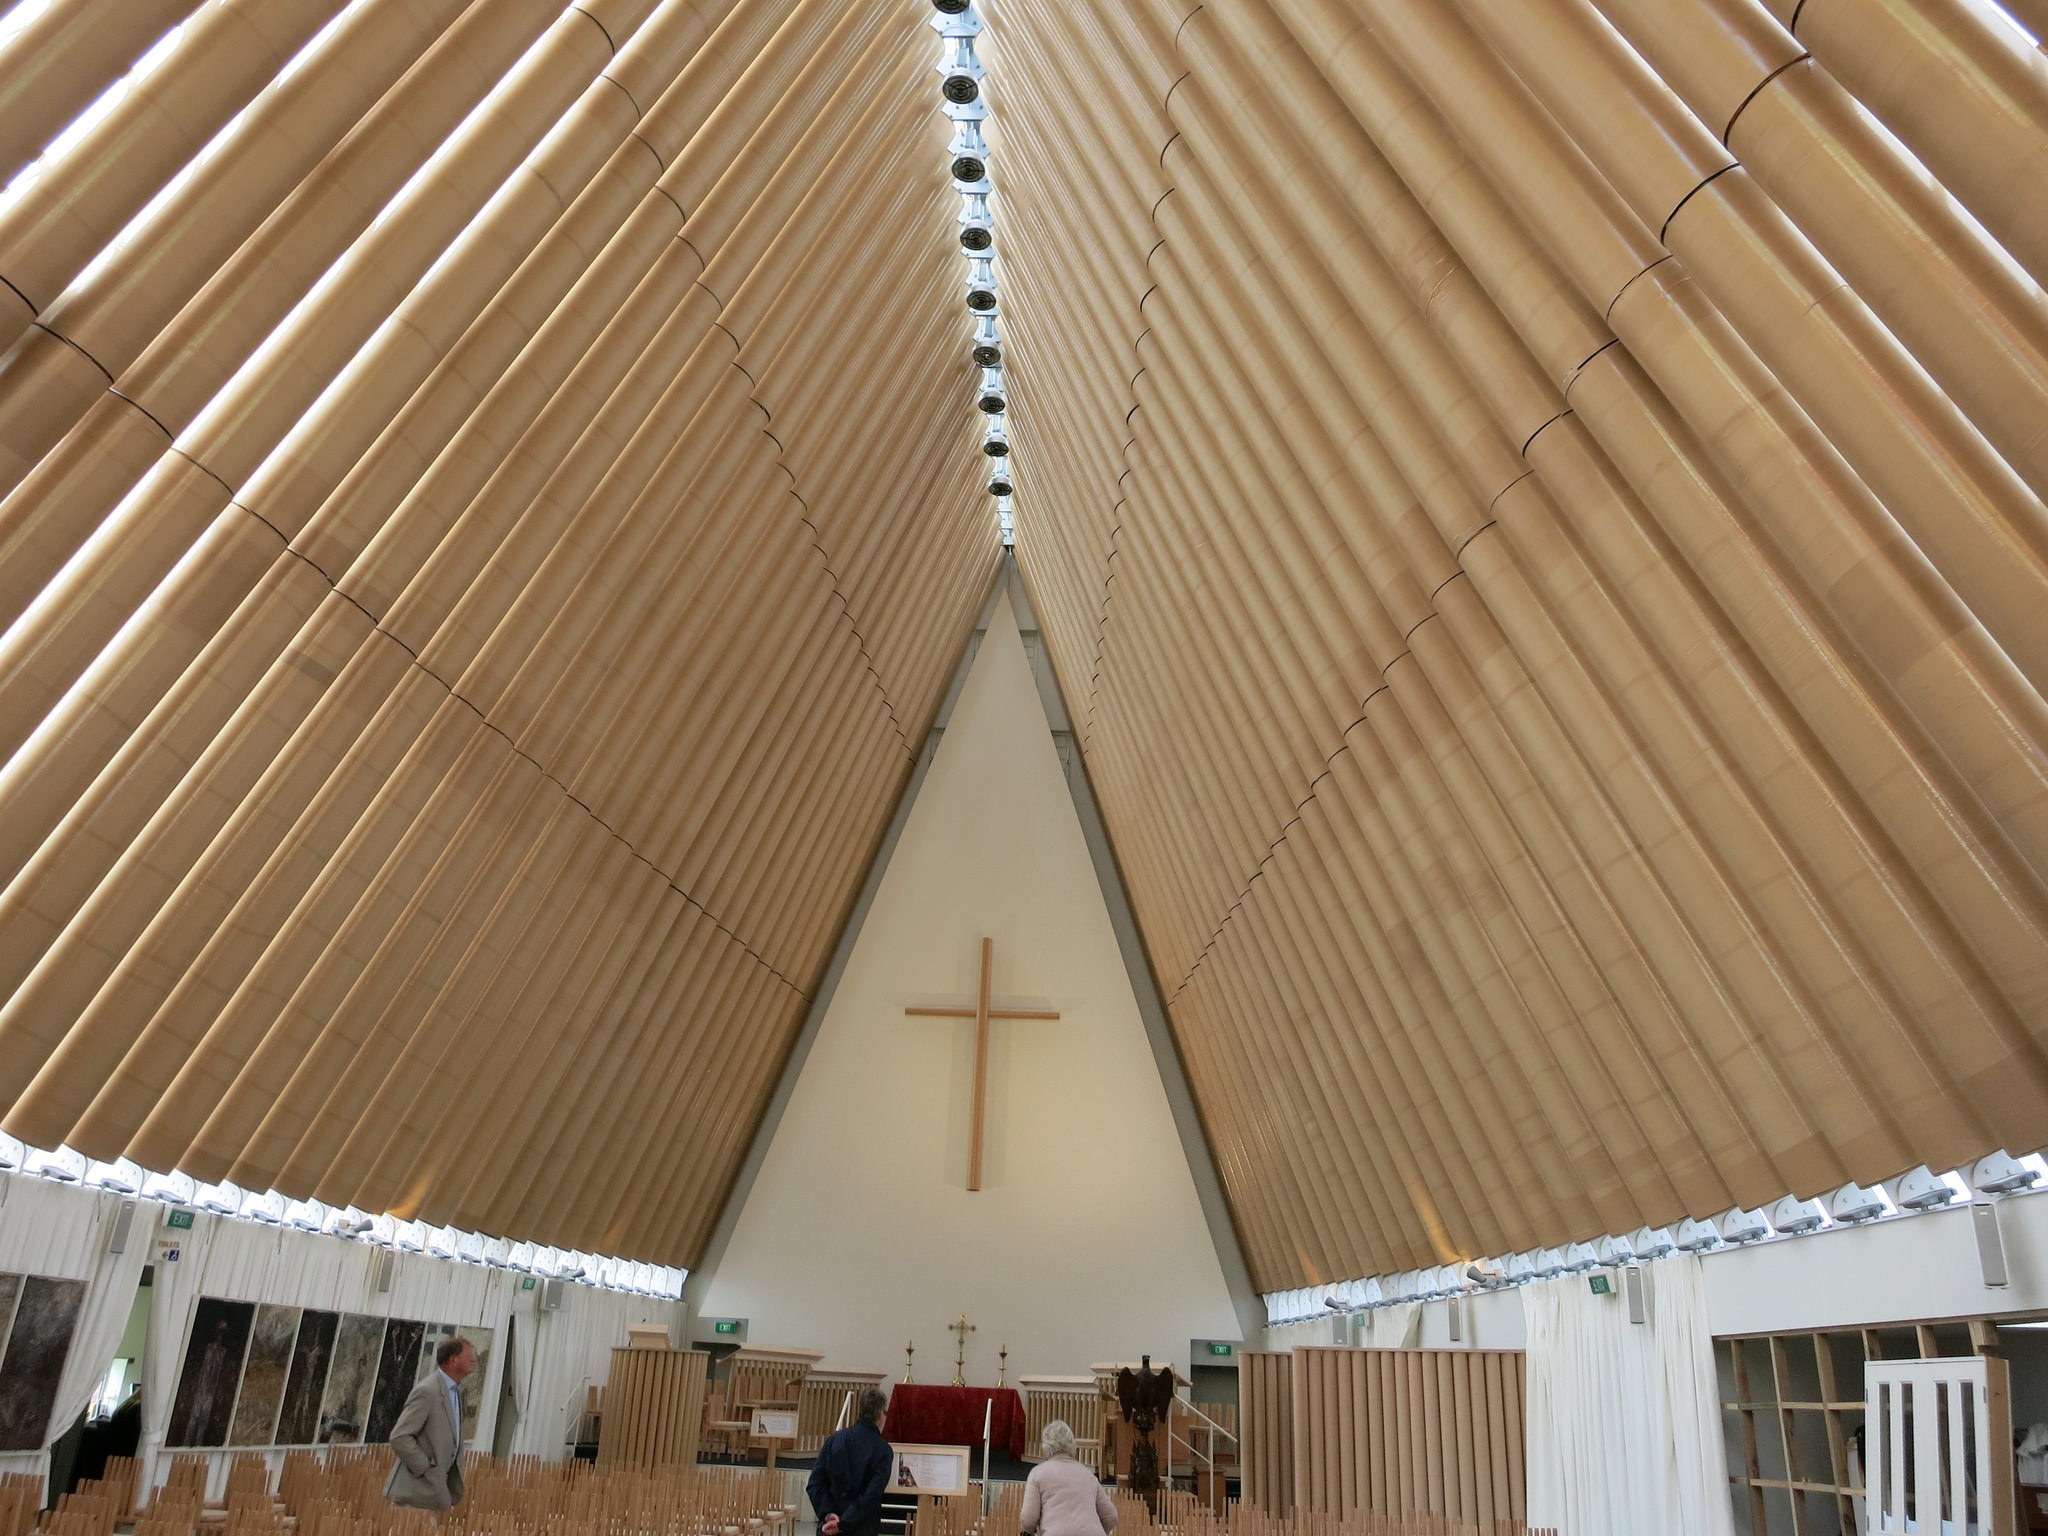 Interior of the post-2011 Christchurch Cathedral in Christchurch, New Zealand